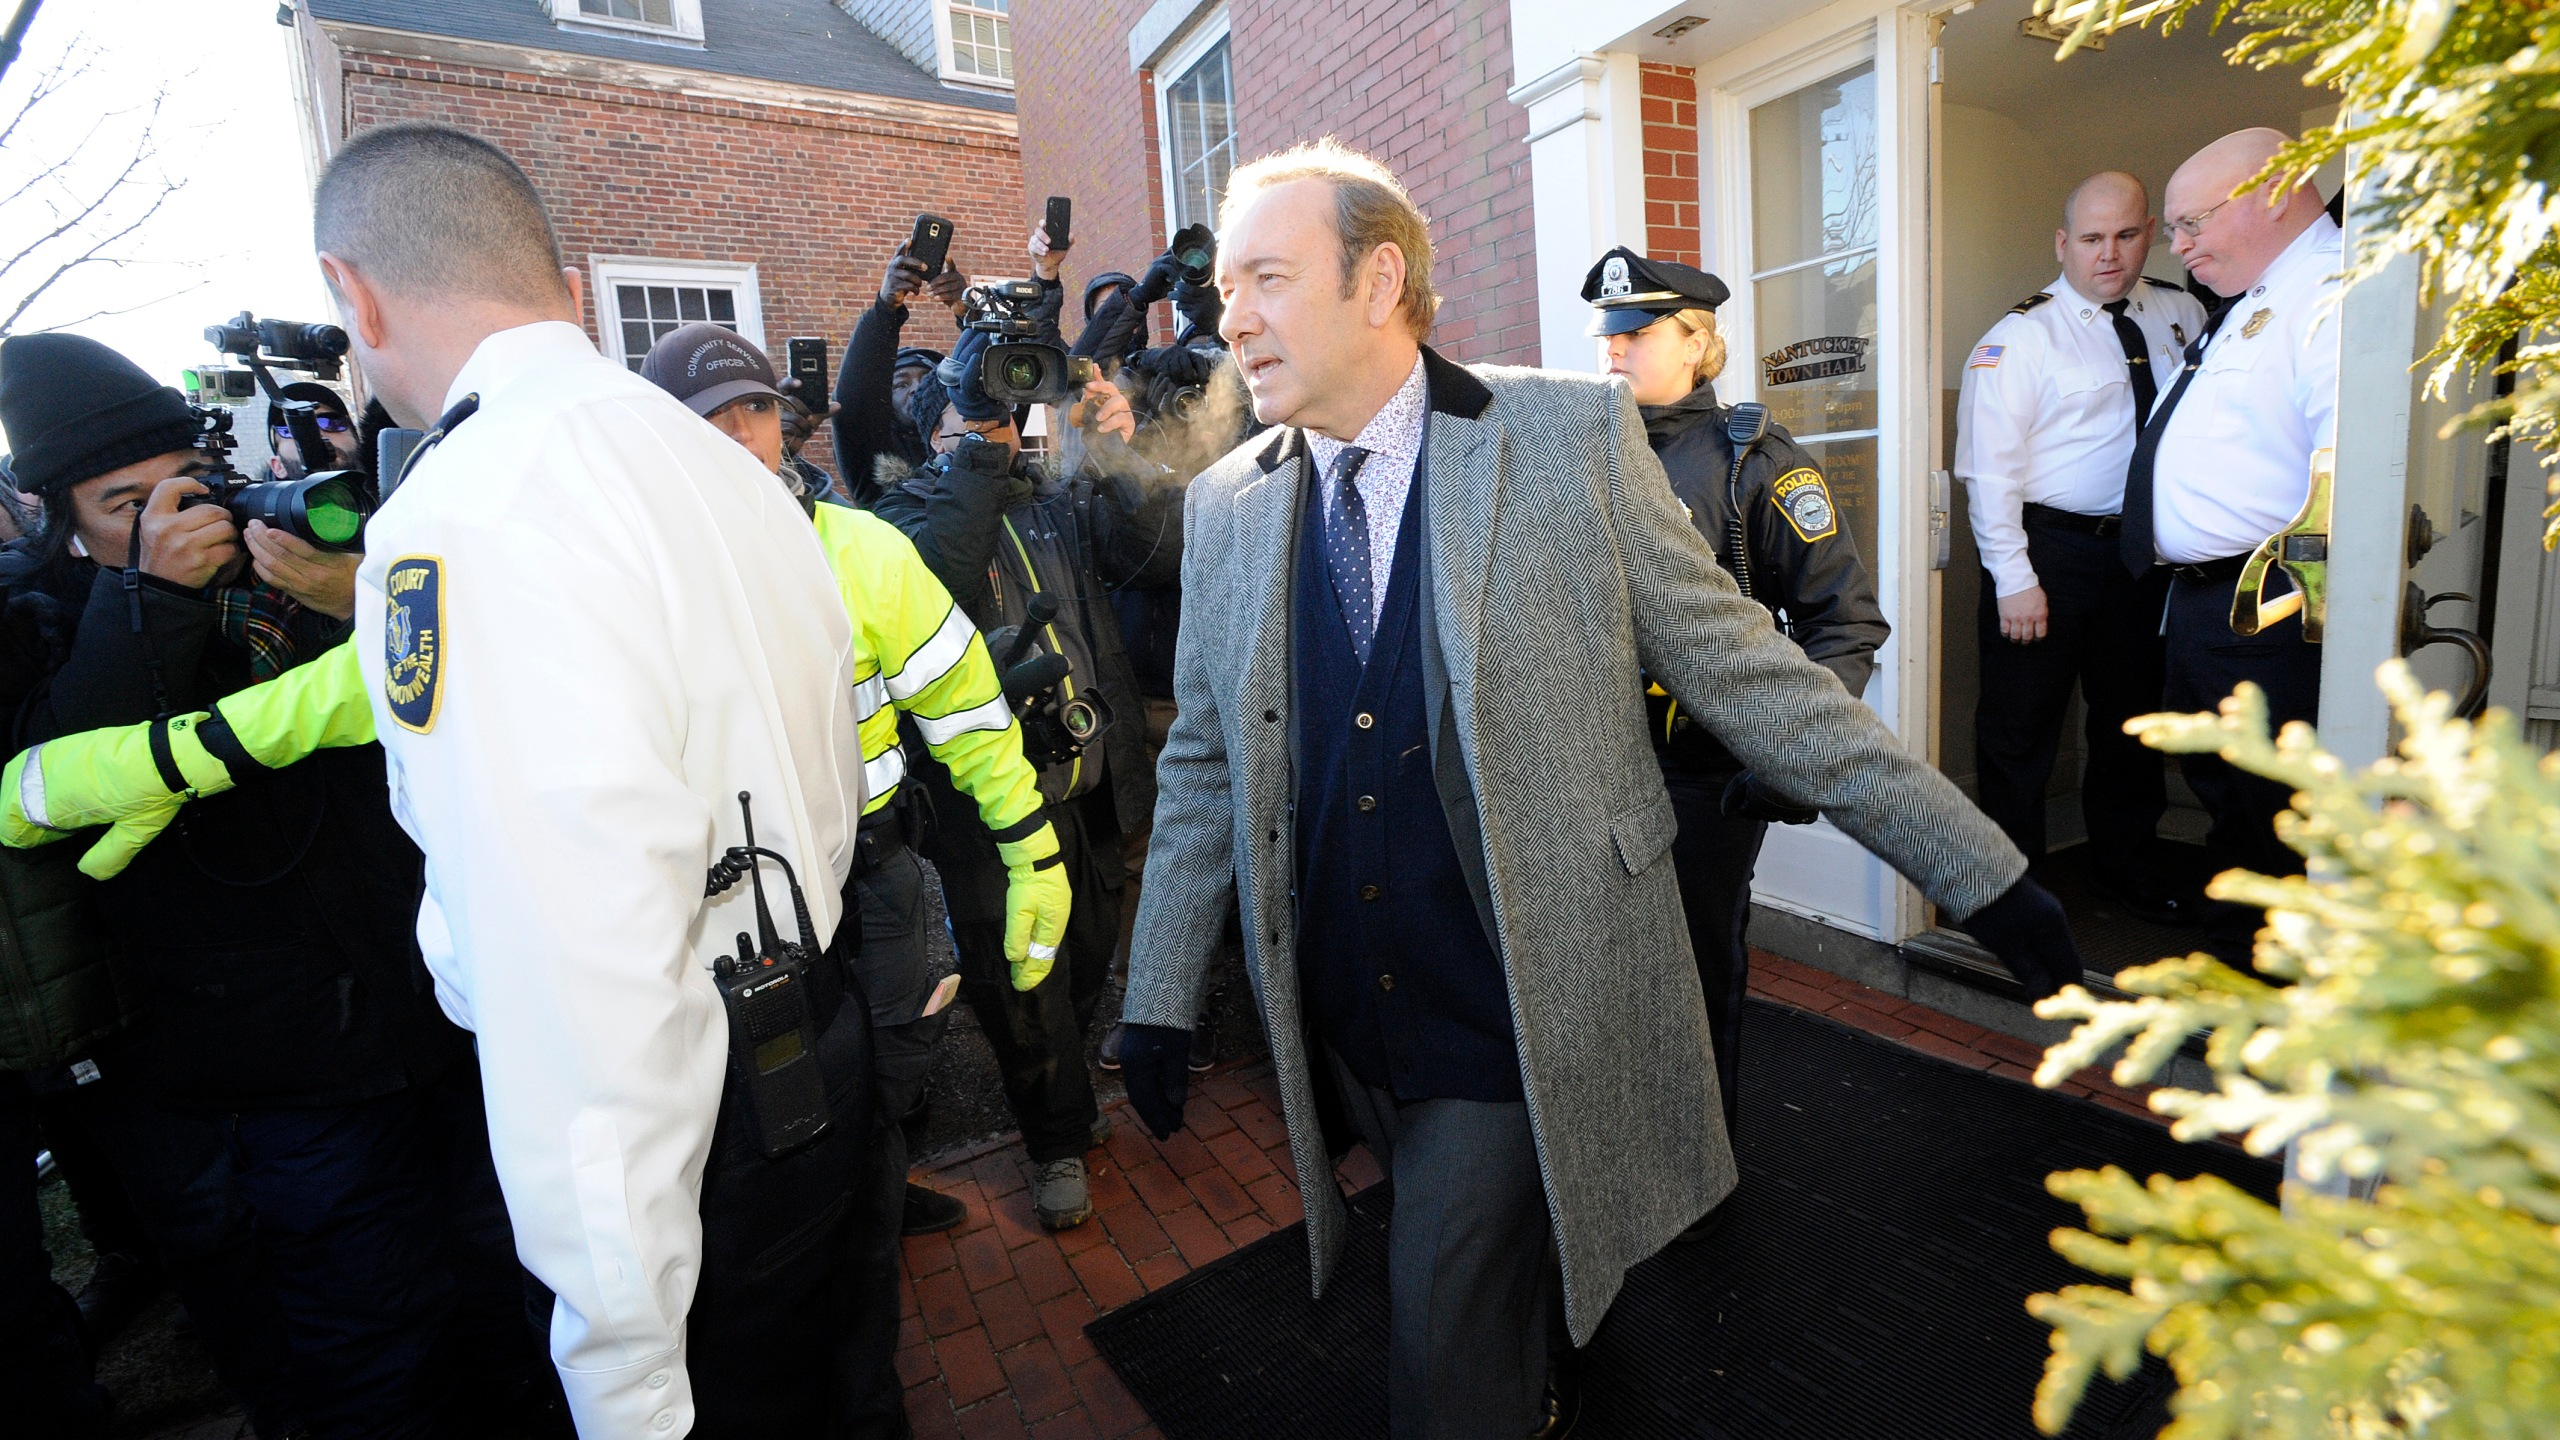 Kevin Spacey exits the courthouse after making an appearance during his arraignment on Jan. 7, 2019 at the Nantucket District Court, in Nantucket, Massachusetts. (Credit:JOSEPH PREZIOSO/AFP/Getty Images)